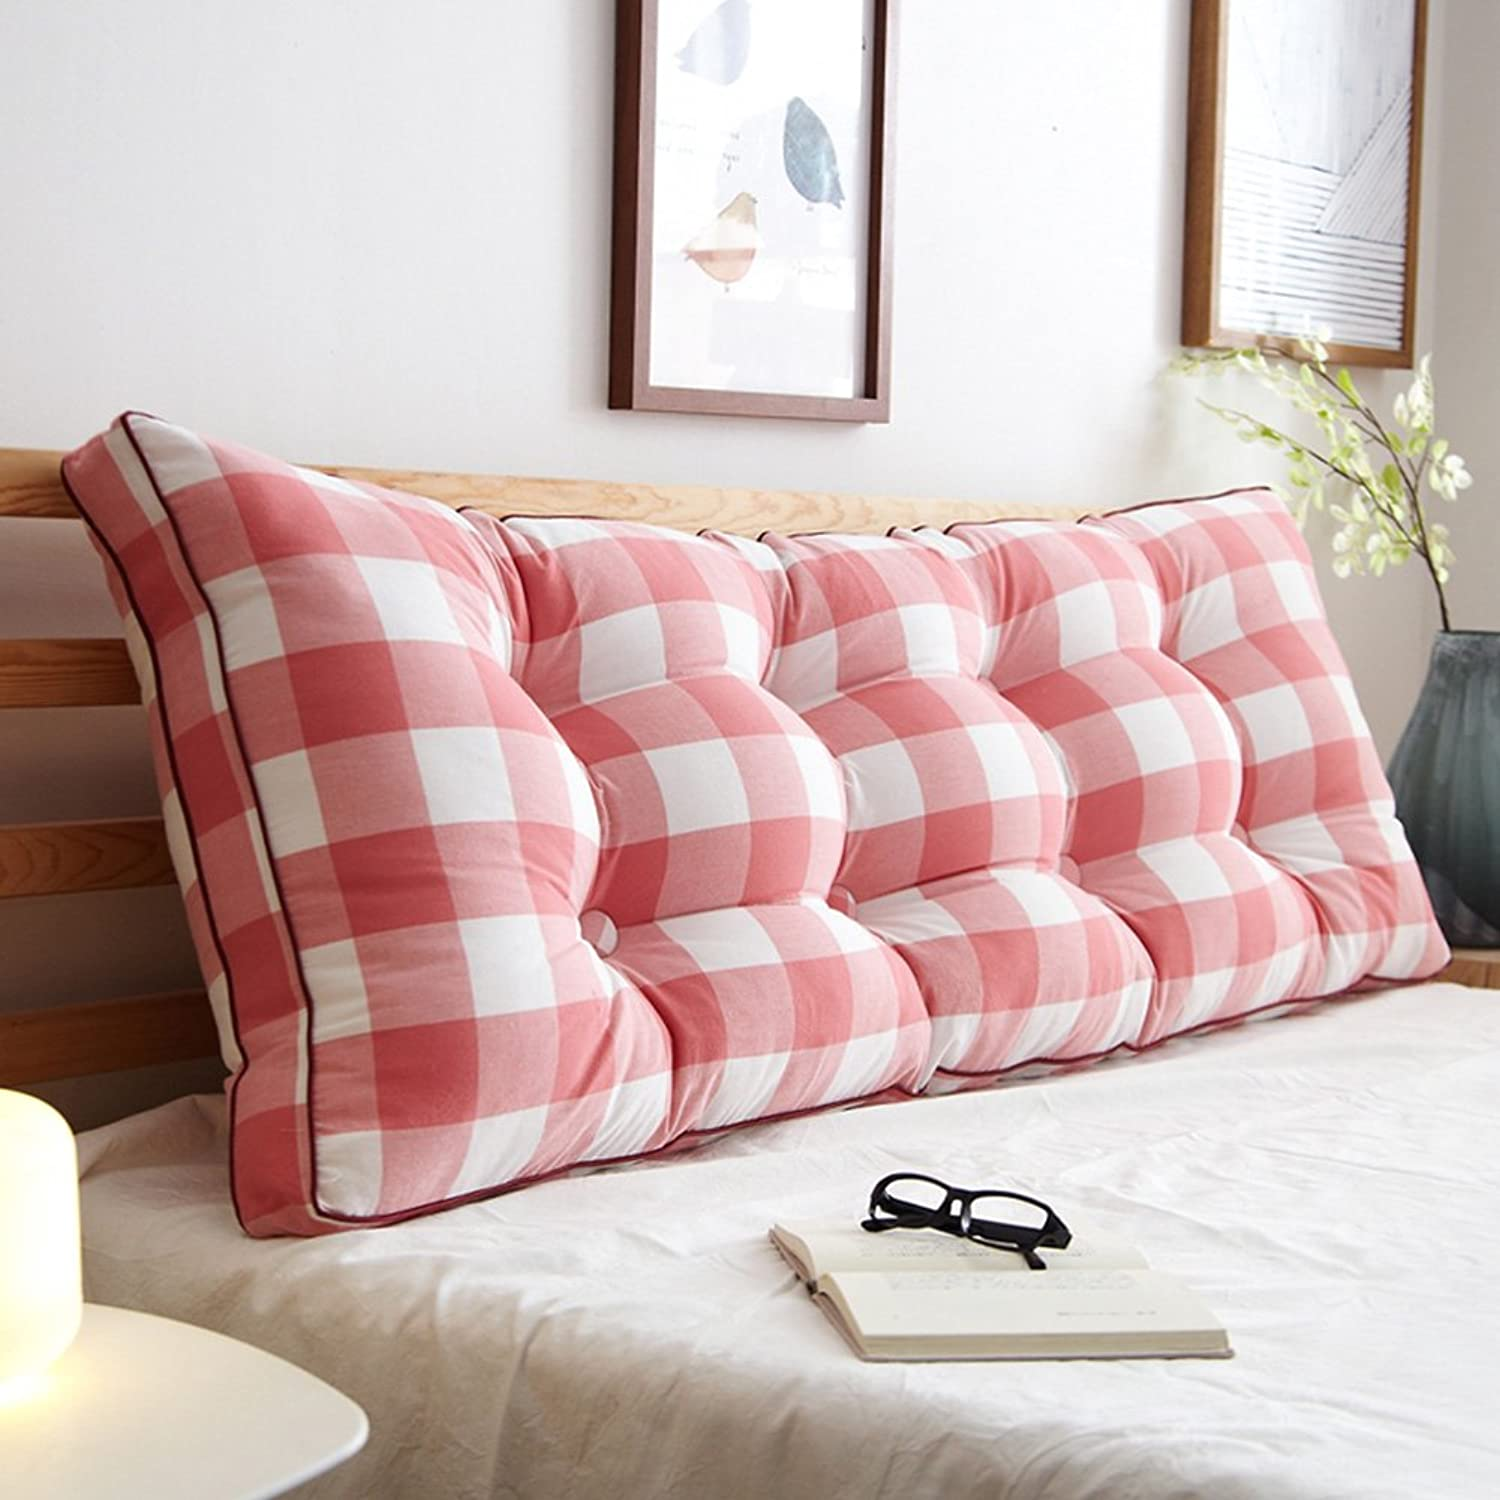 RFJJAL Triangle Bedside Back Cushion Large Back Pillow Sofa Soft Bag Bedroom Two-Person Bed Cushion,7 colors, 8 Sizes (color    4, Size   100×20×50cm)